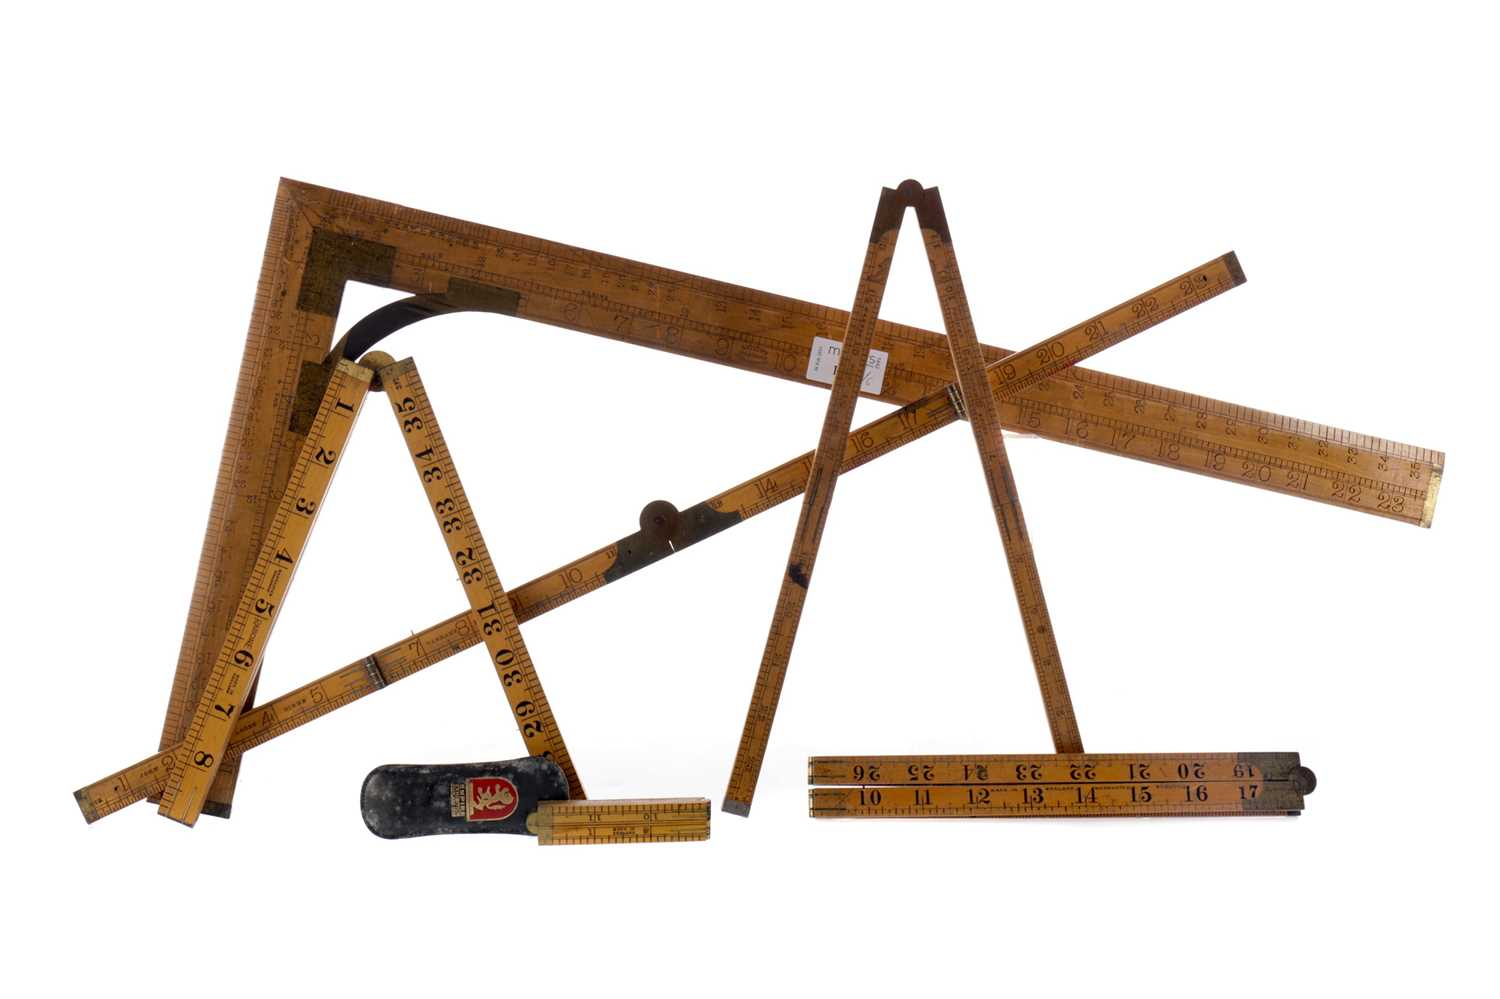 Lot 1729 - A DRIVER'S OF MANCHESTER SET SQUARE, ALONG WITH FIVE FOLDING RULES